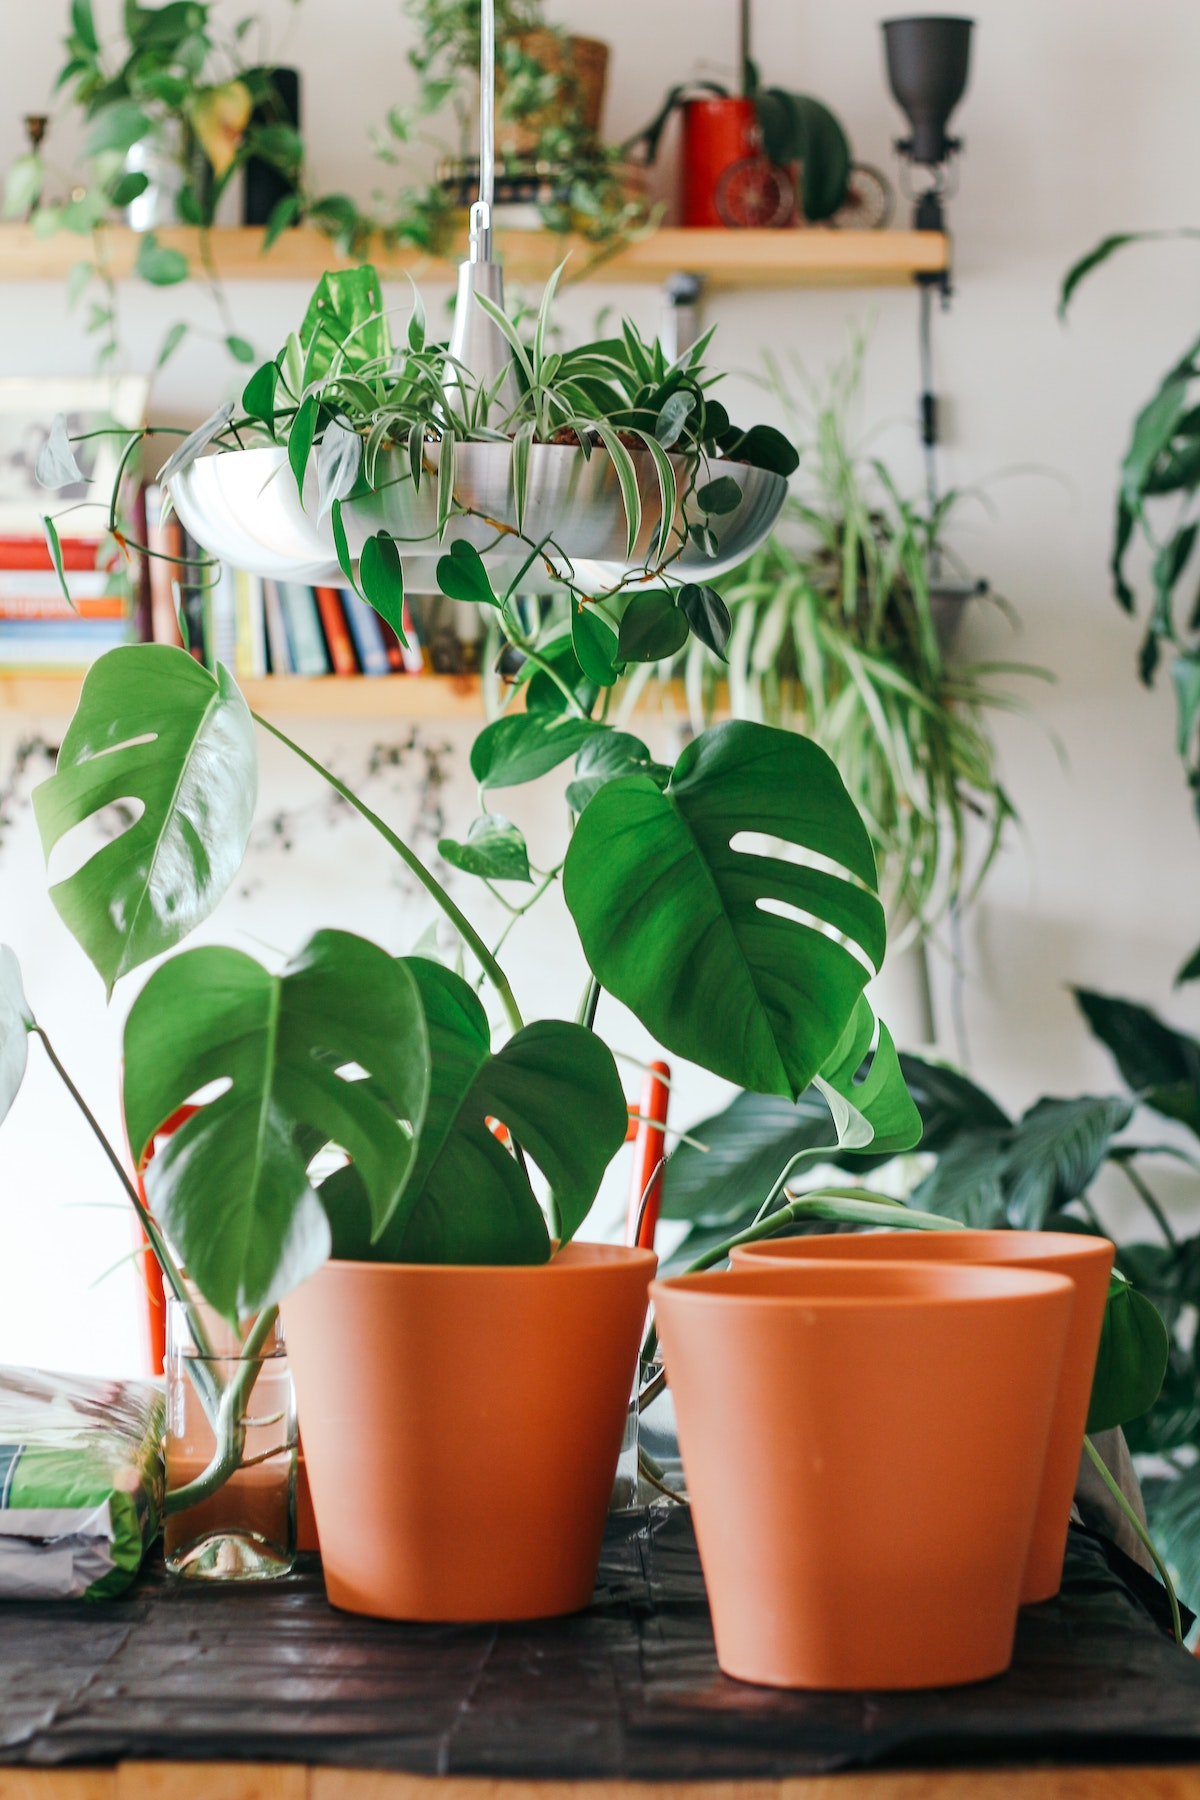 Photo of monstera plants and other houseplants in background